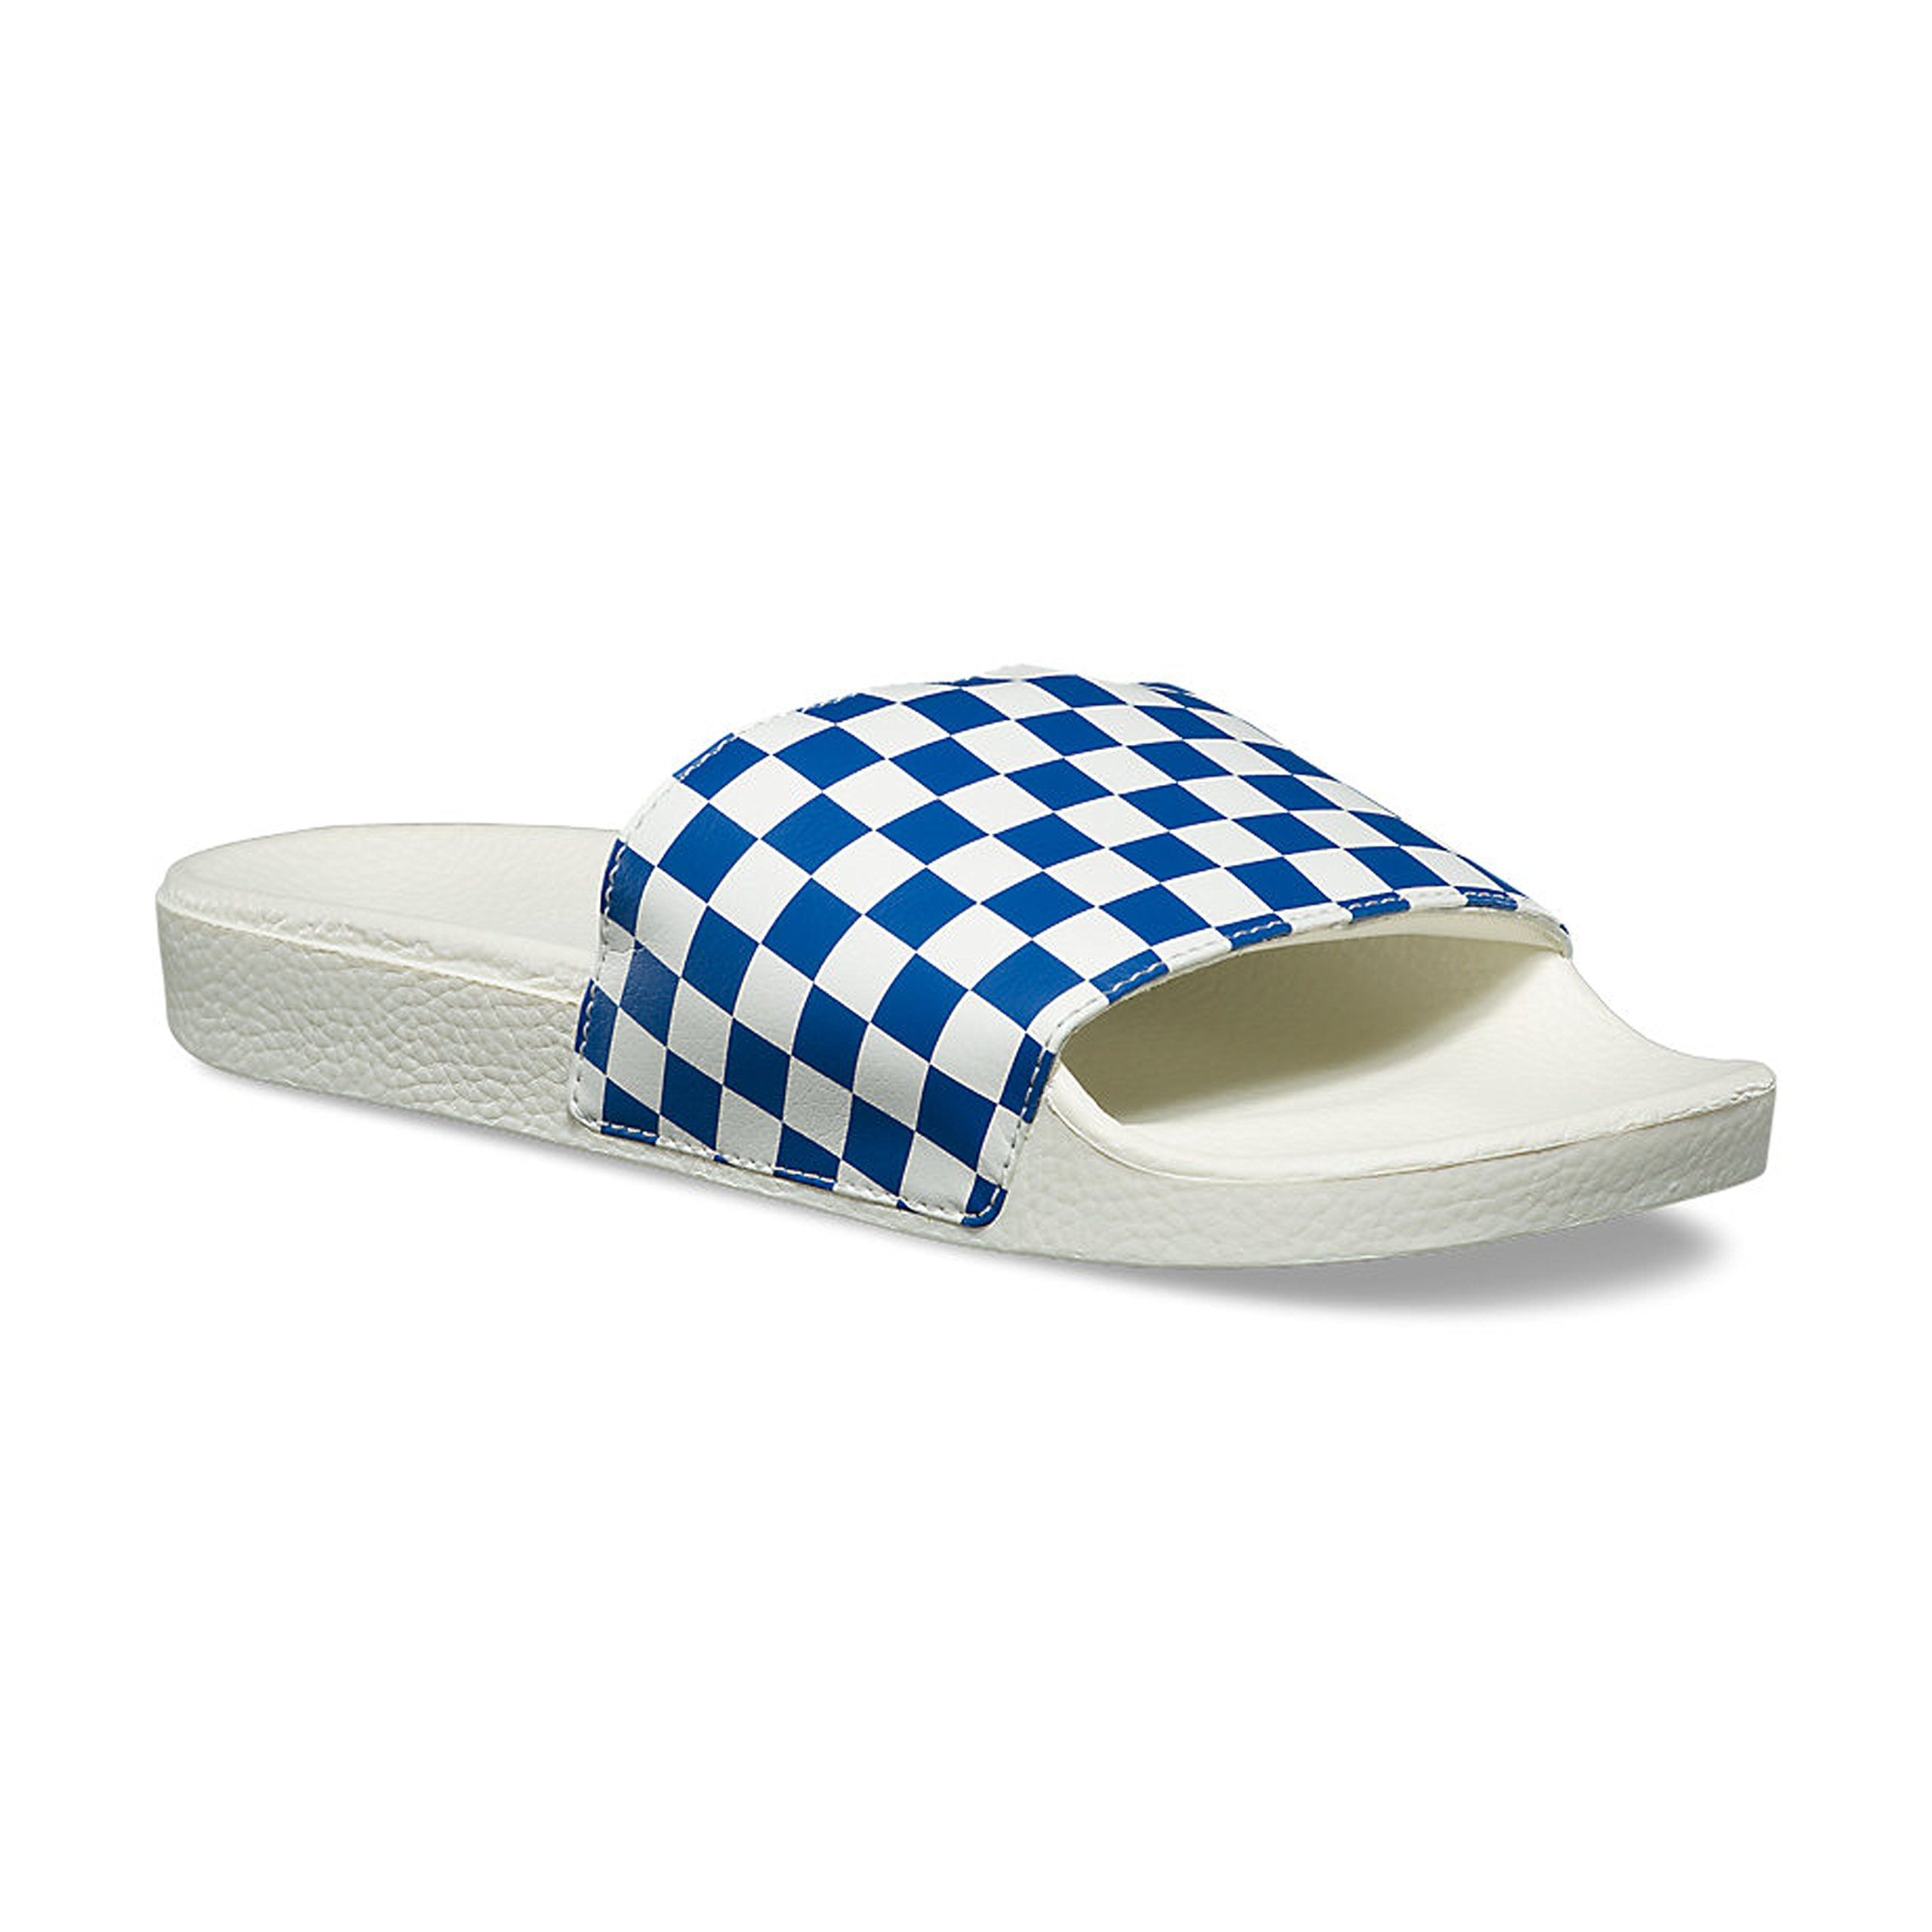 824252bb7672 Galleon - Vans Checkerboard Slide-On True Blue VN0004KIFBV Mens 8